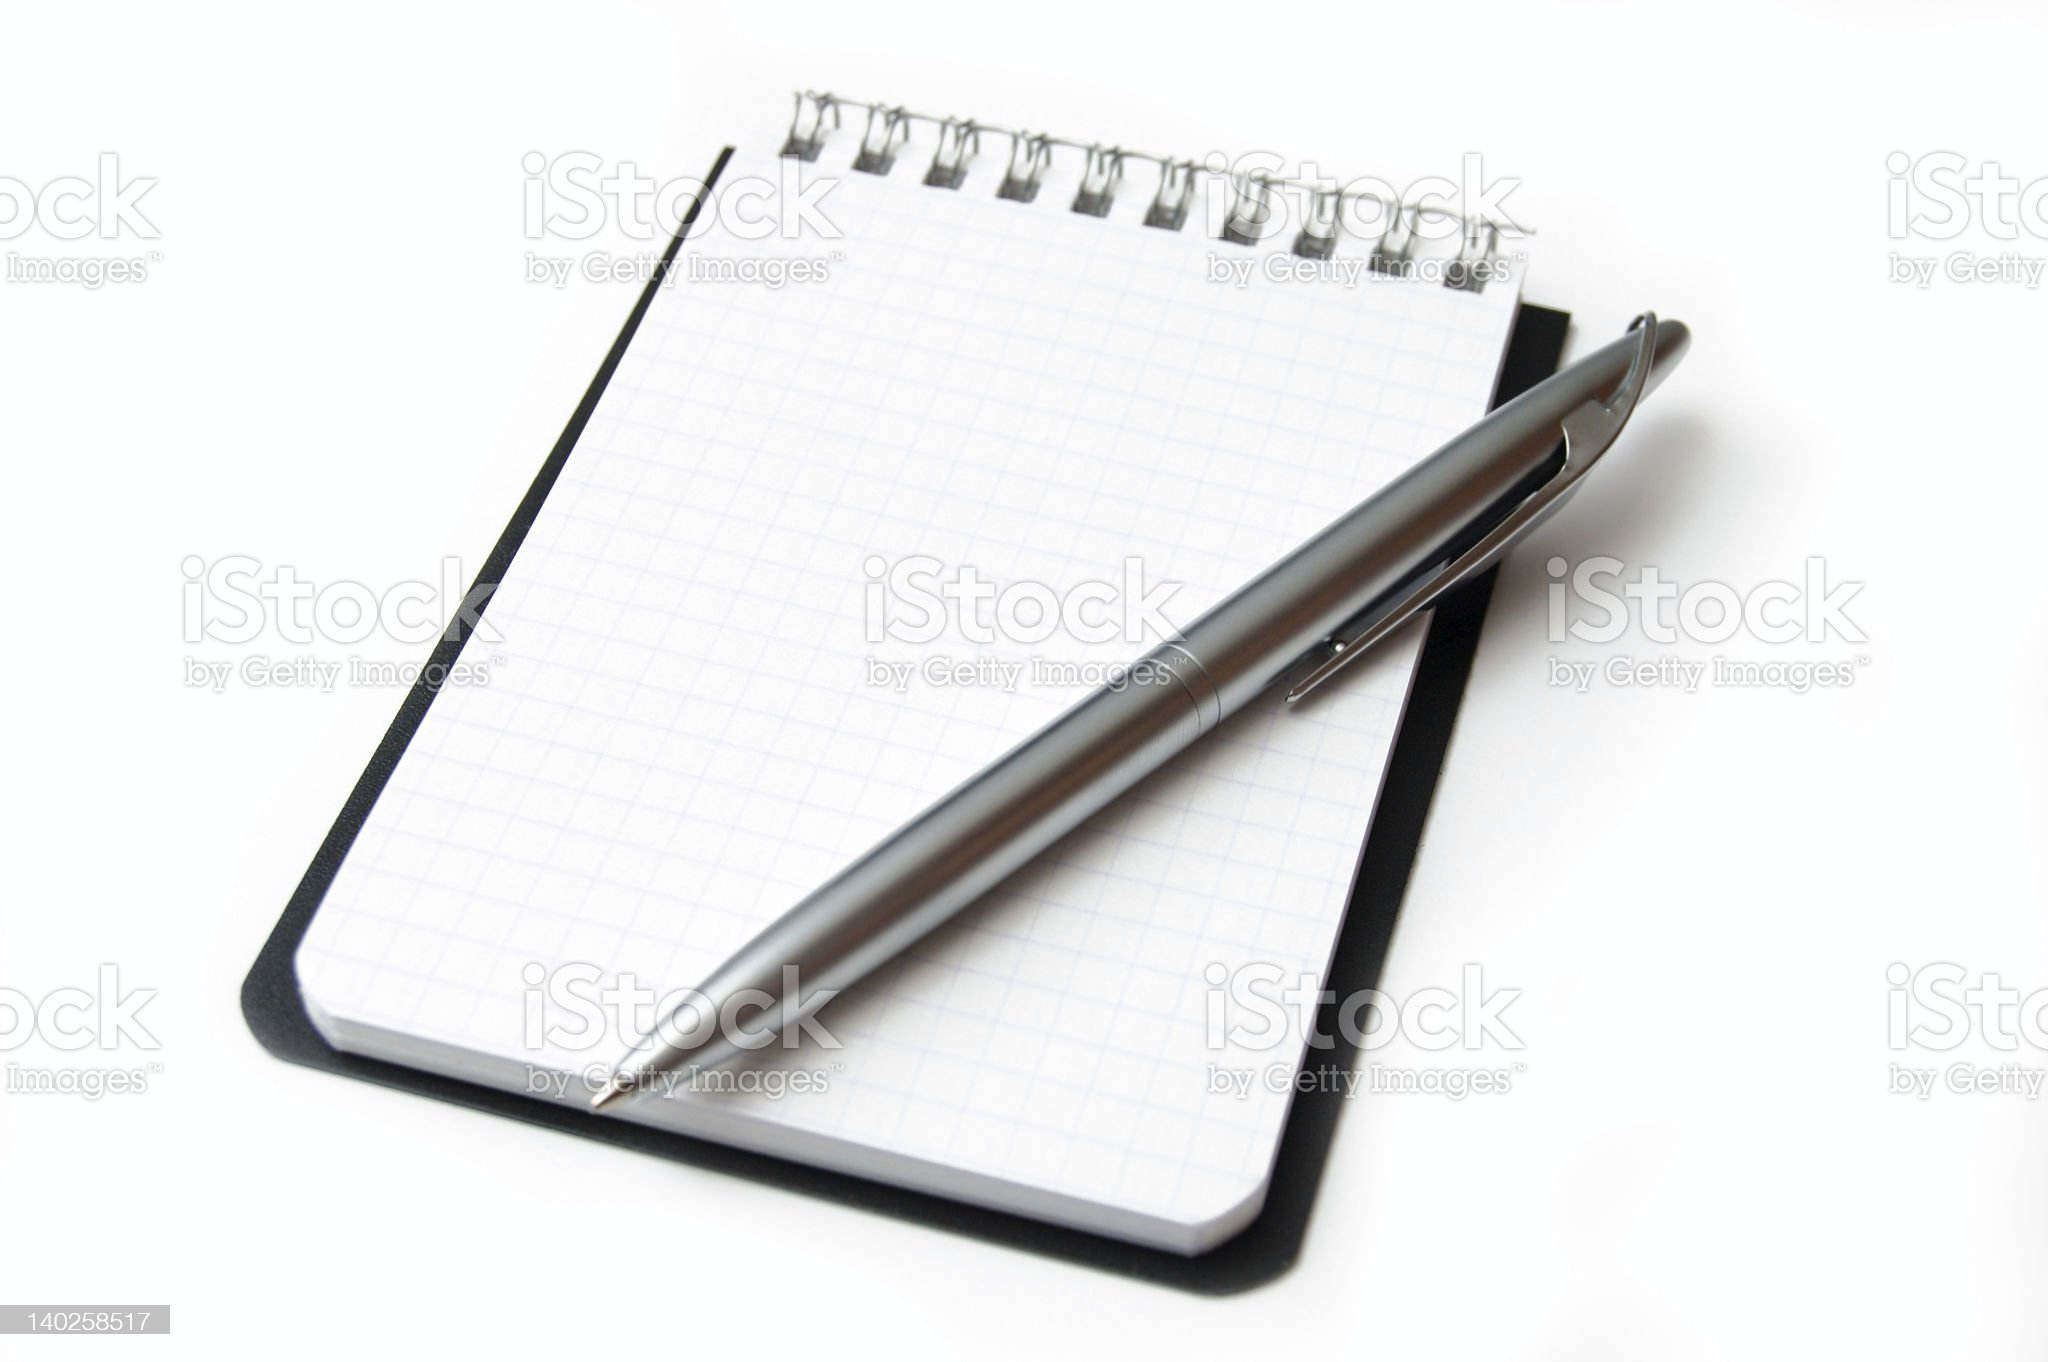 Blank page of a notebook with pen on a white background royalty-free stock photo